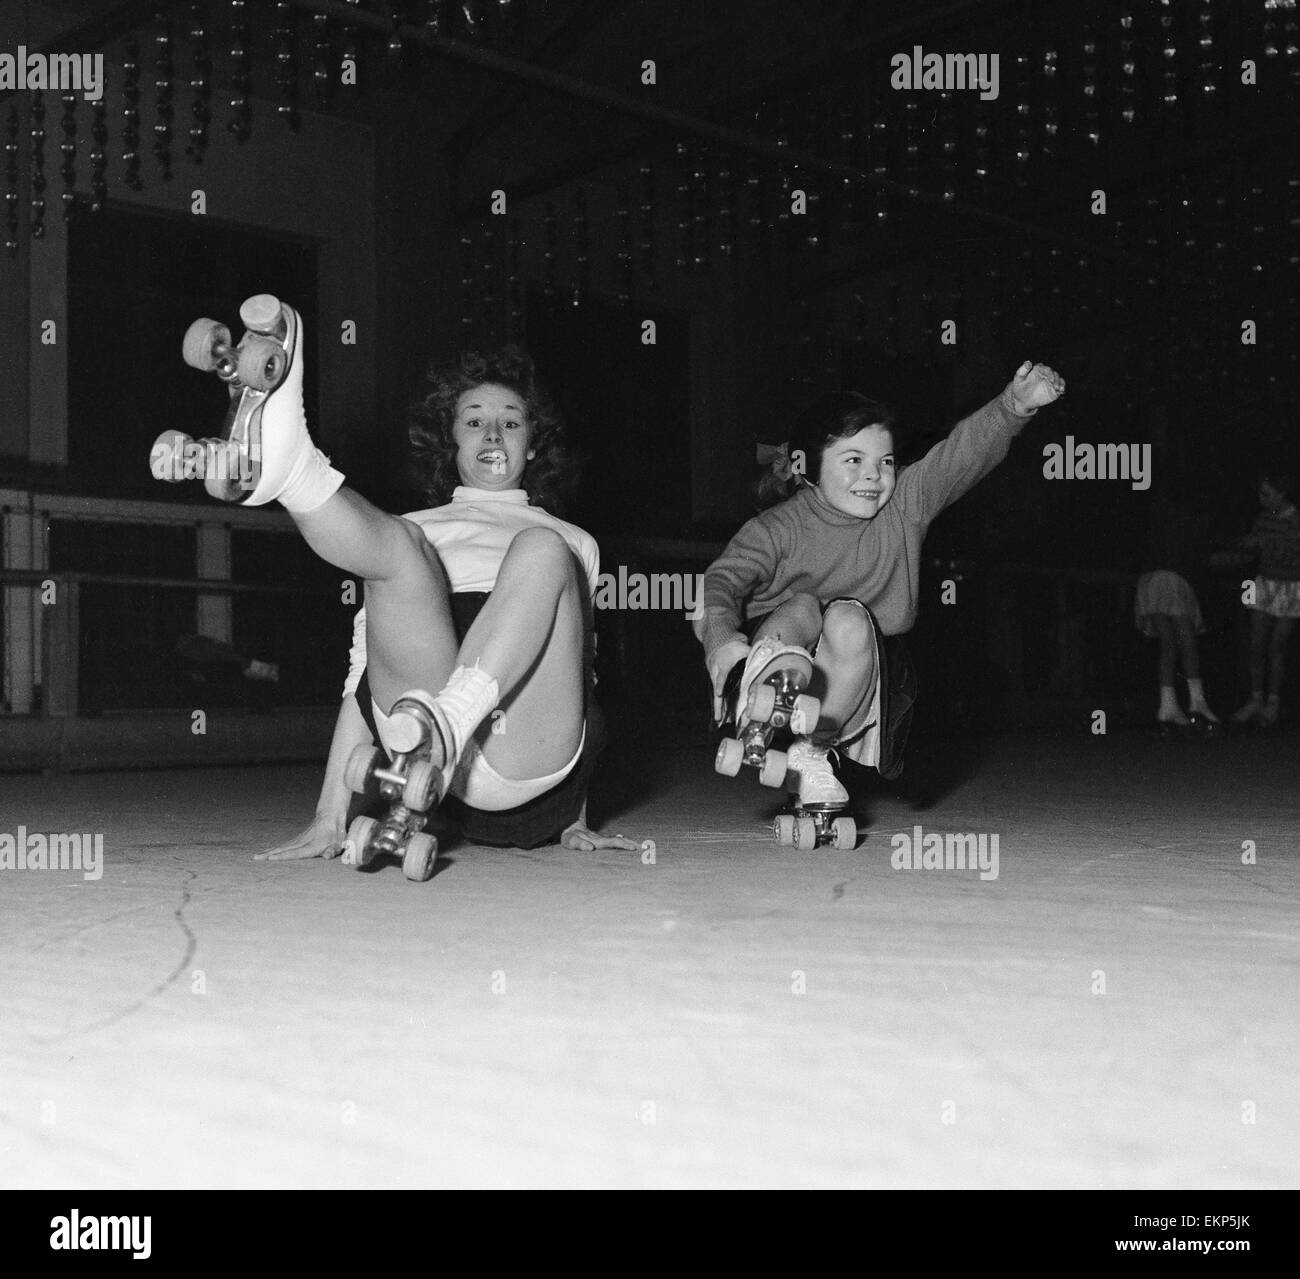 Roller skating rink queen anne - Teenager Betty Jones Pictured Roller Skating With Seven Year Old Anne Morgan At The Rink In